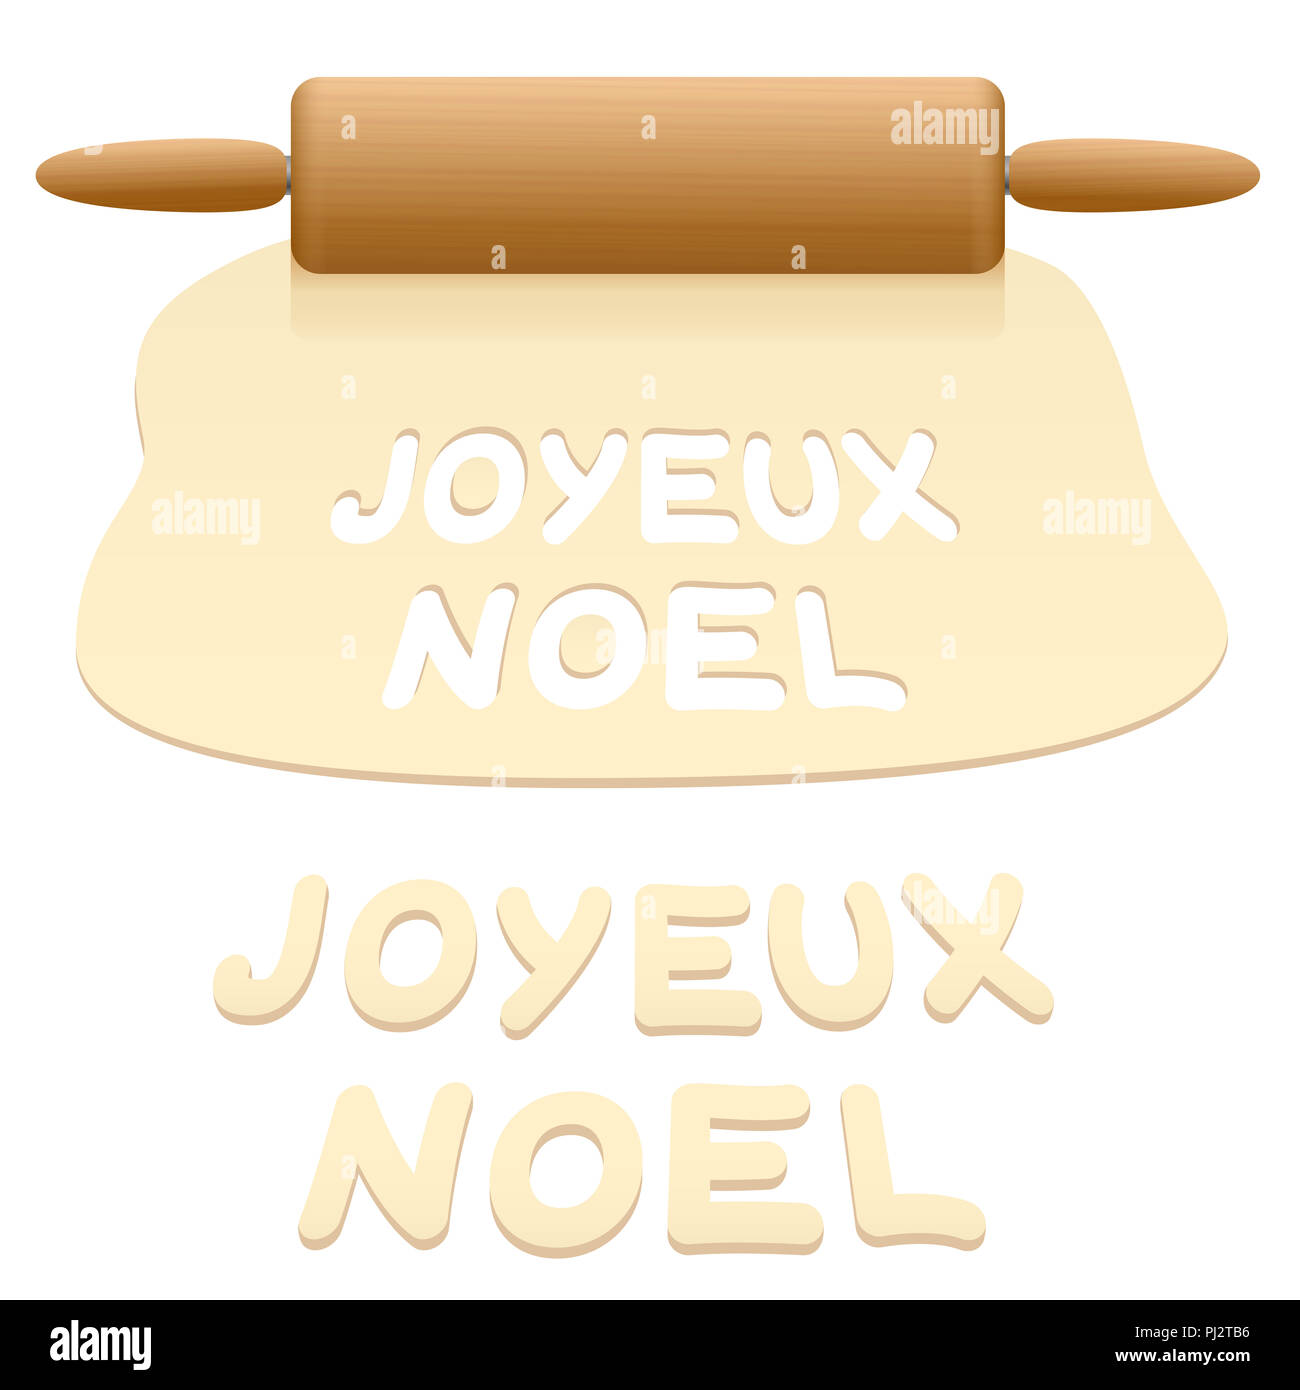 French Noel Stock Photos & French Noel Stock Images - Alamy